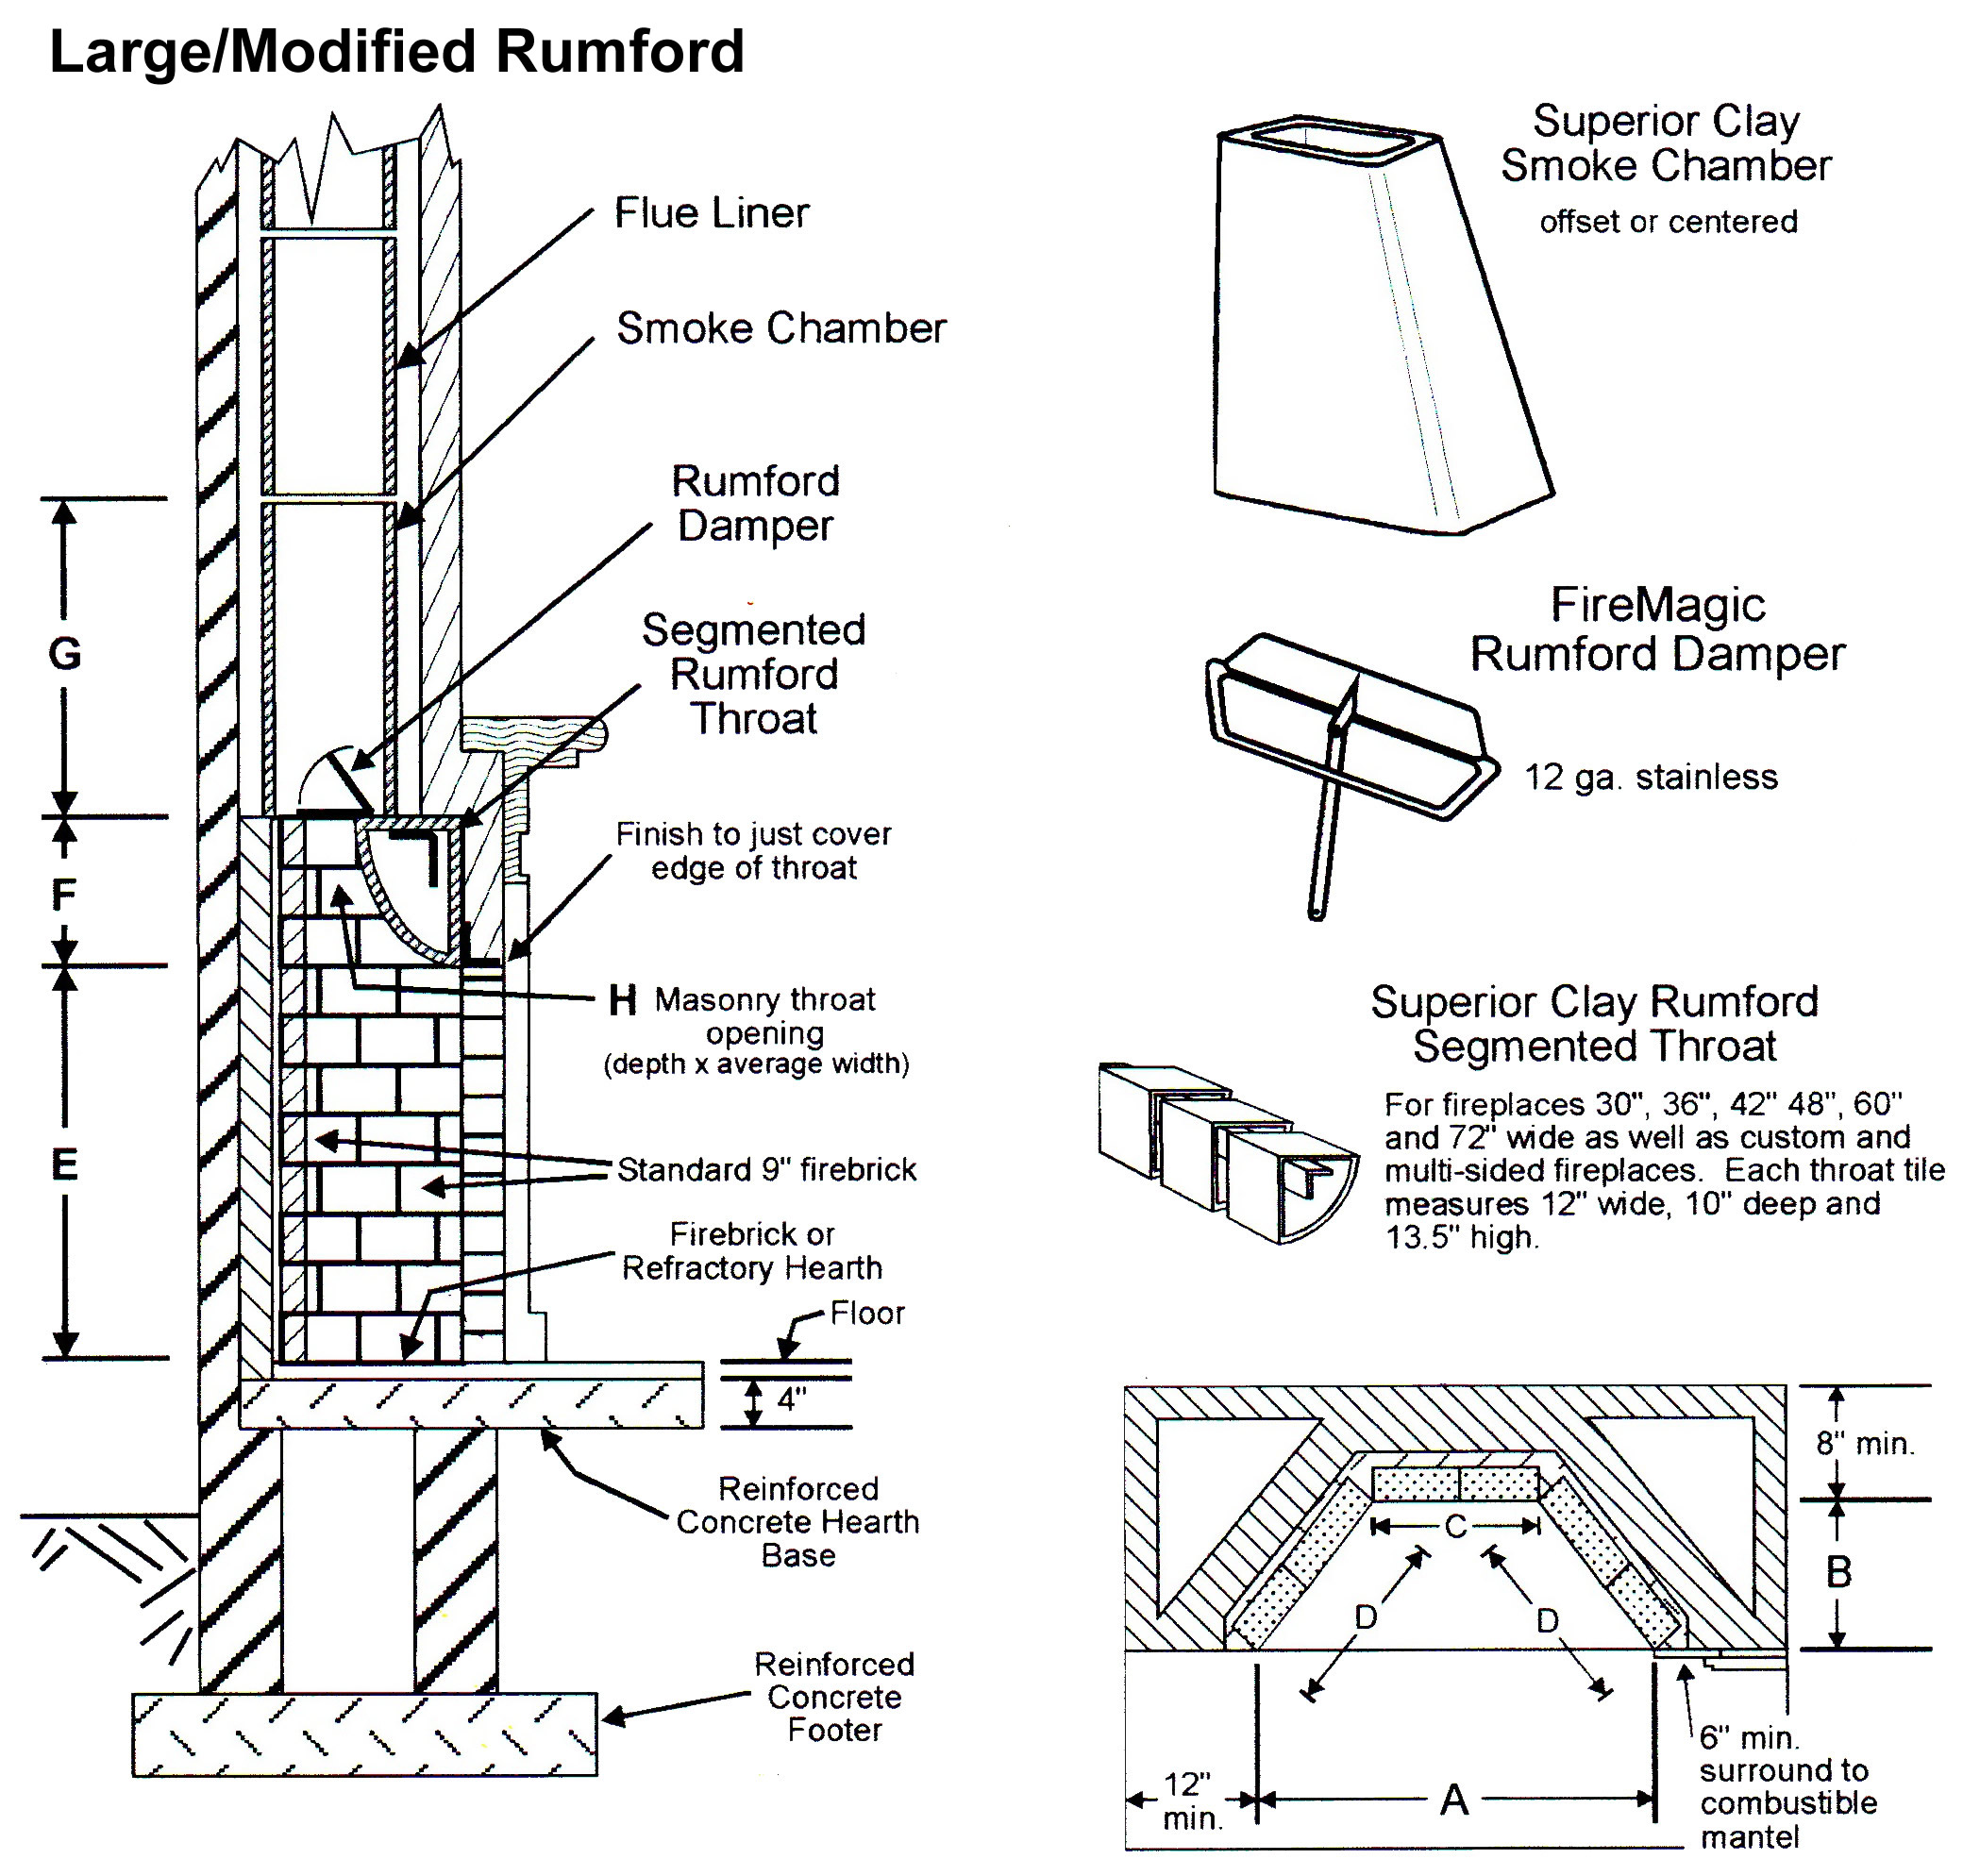 Decorating Rumford Fireplace Plans And Instructions